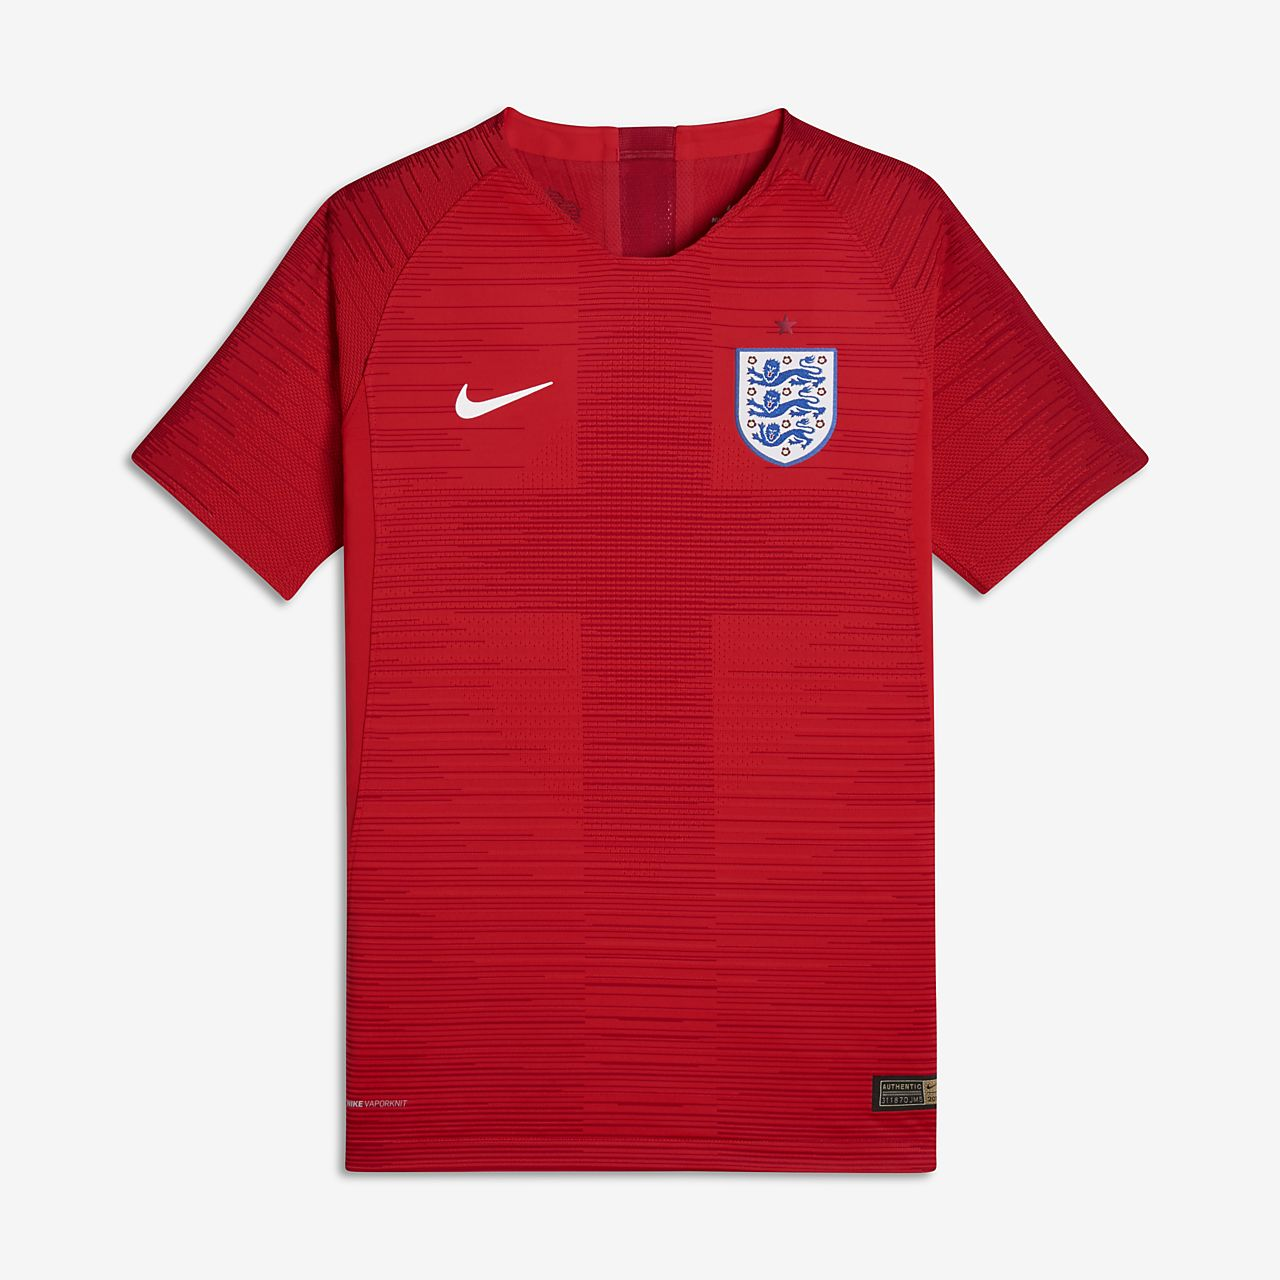 74aab44006 2018 England Vapor Match Away Older Kids  (Boys ) Football Shirt ...